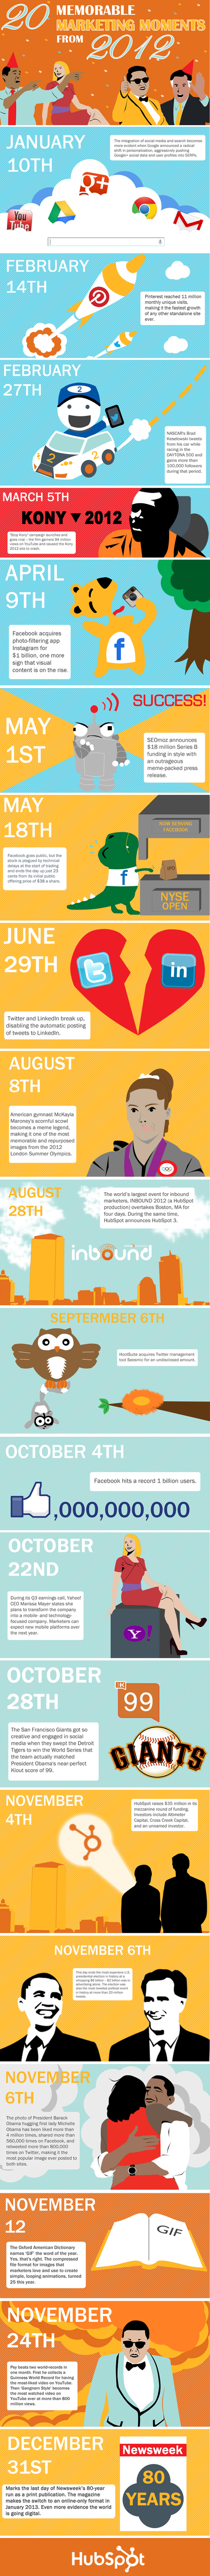 20 of the Most Memorable Marketing Moments in 2012 [INFOGRAPHIC] | Social Mercor | Scoop.it